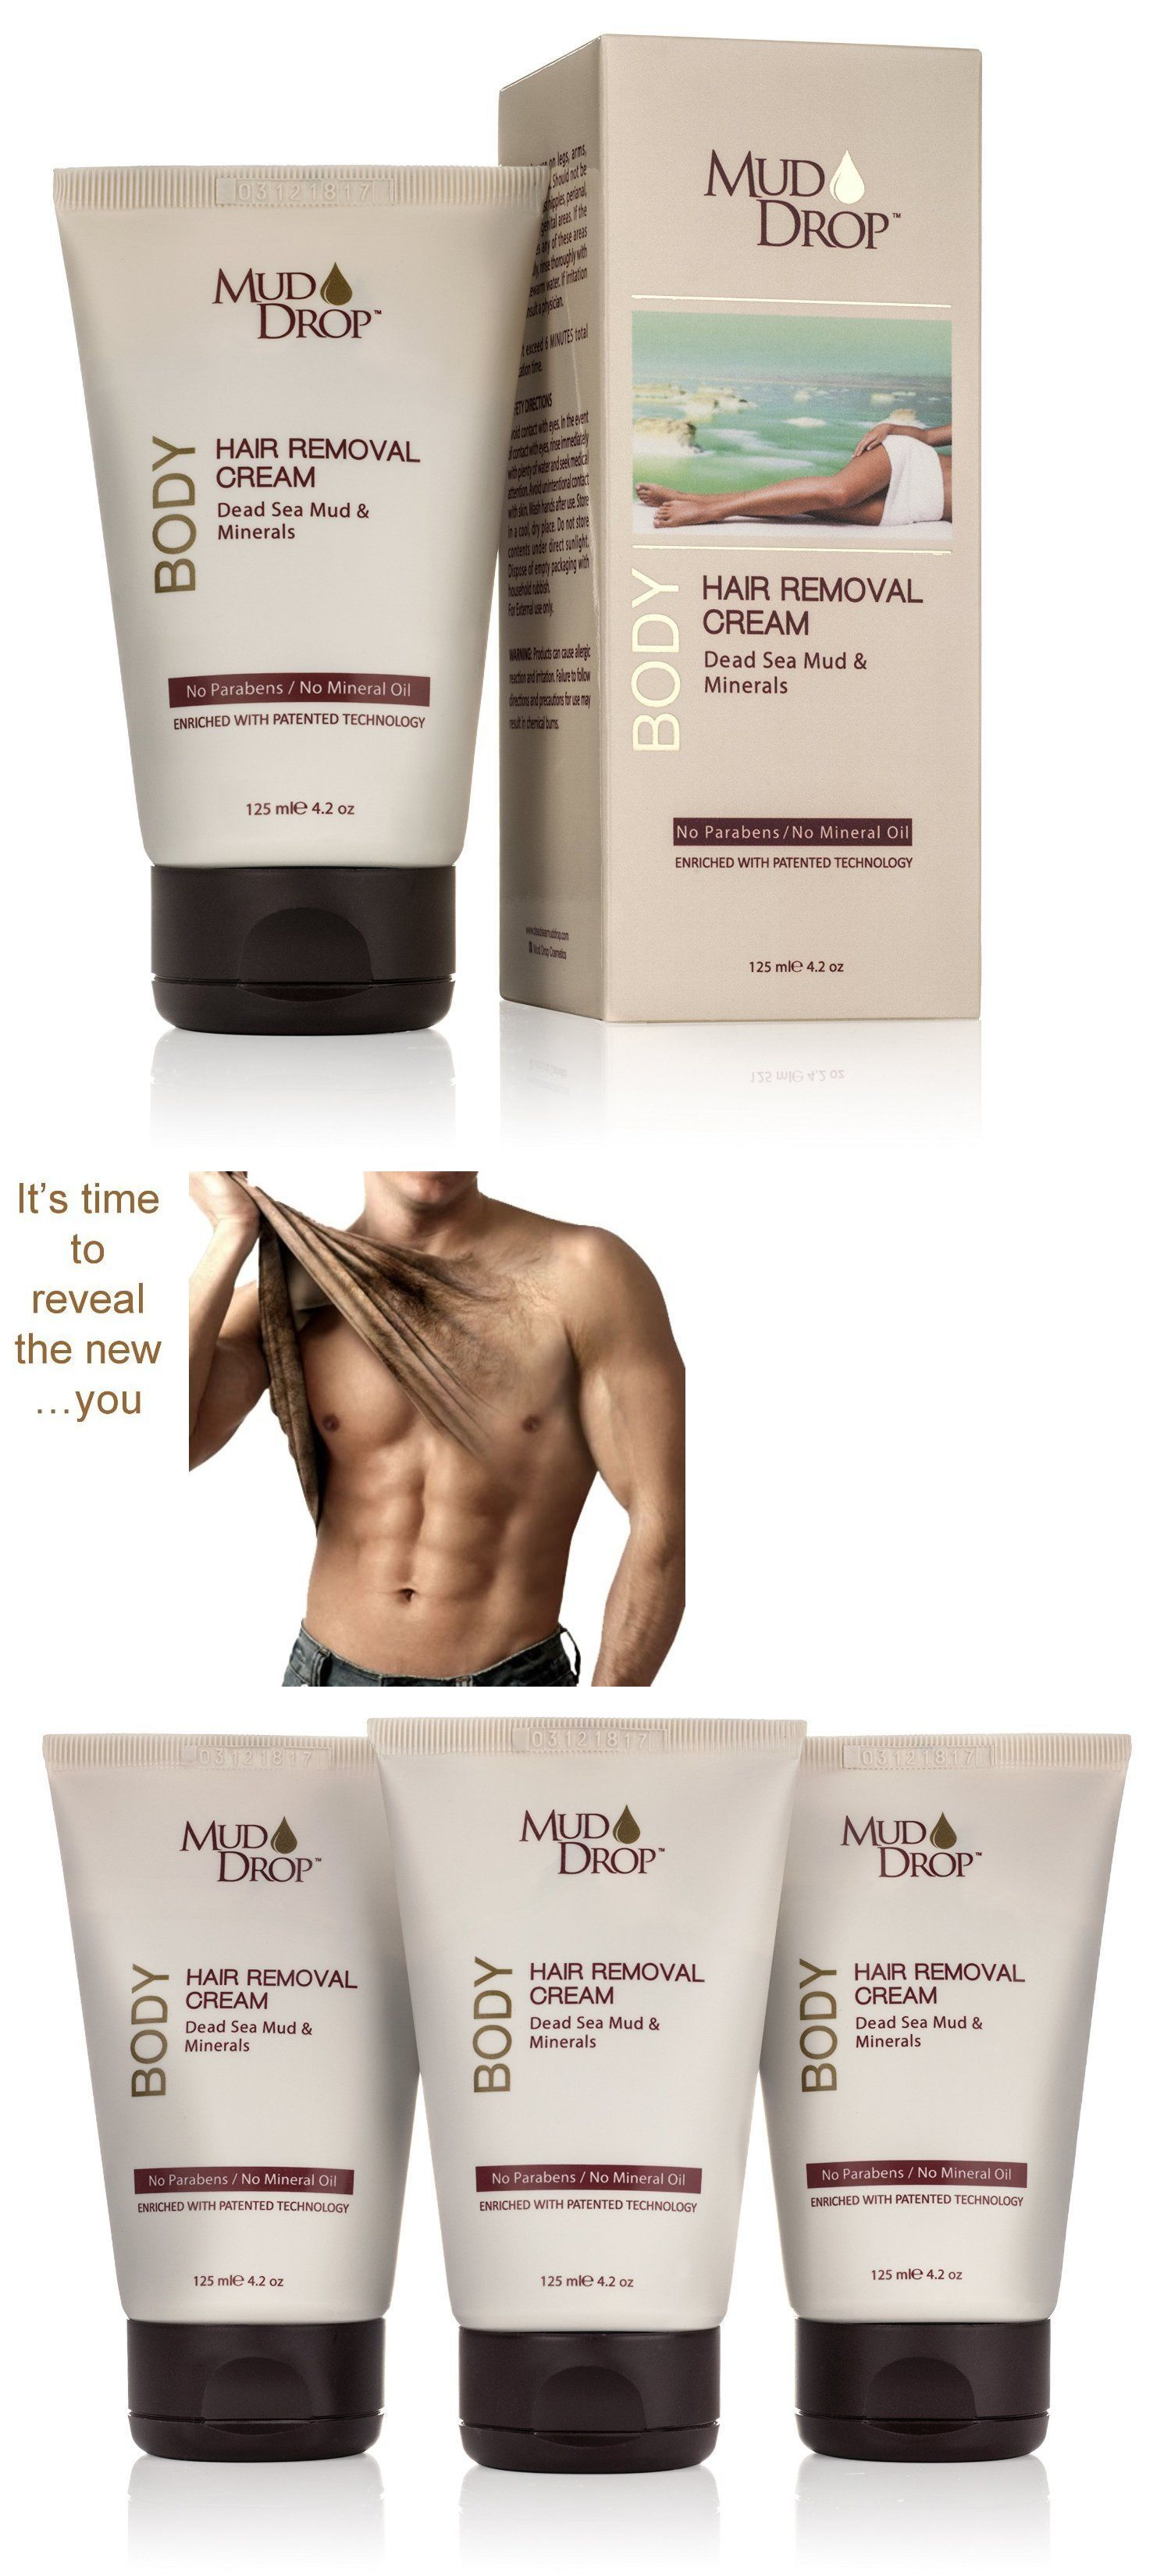 Hair Removal Creams and Sprays Mud Drop Skin So Soft Fresh And